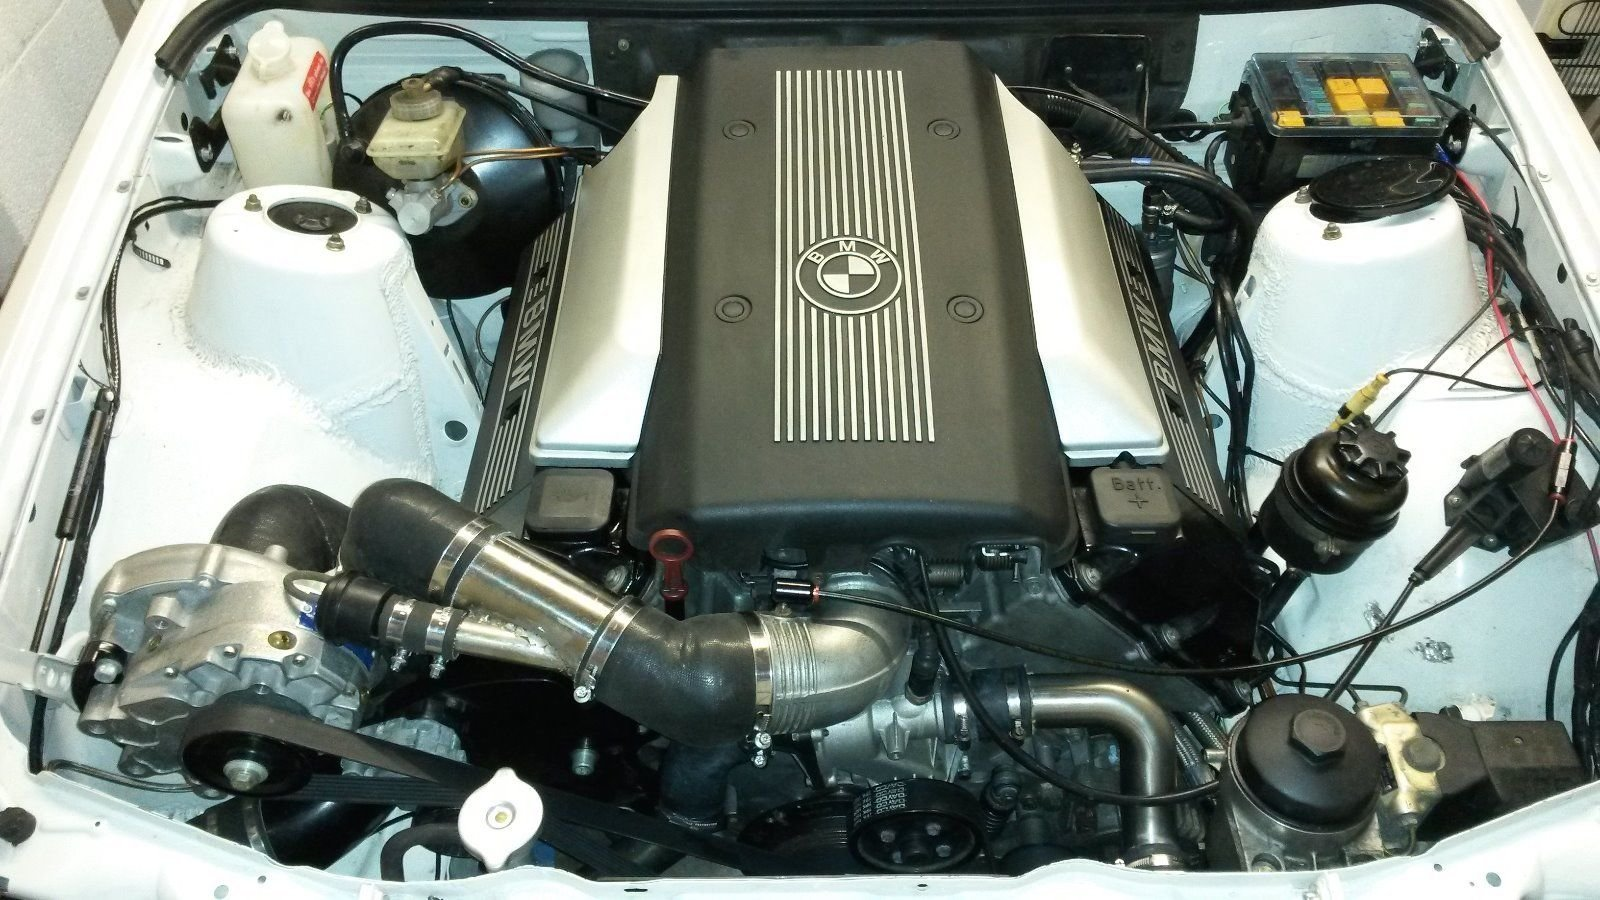 1989 520BHP BMW E30 Touring Supercharged V8 'Sleeper' For Sale (picture 5 of 6)